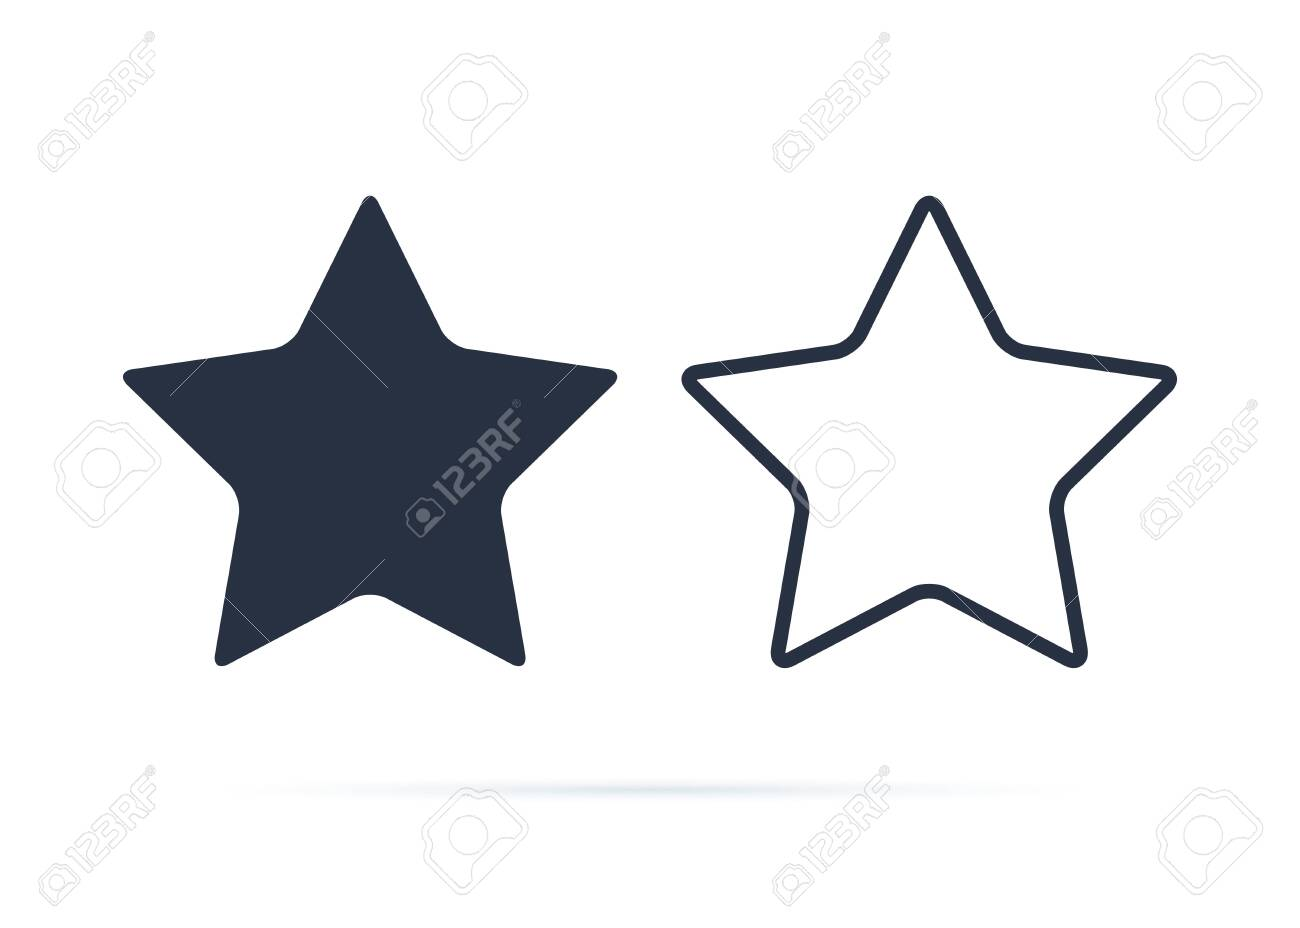 Star symbol, Star icon vector. Reward, rating symbol button. Solid and line icons set for success or rate design. - 121663108